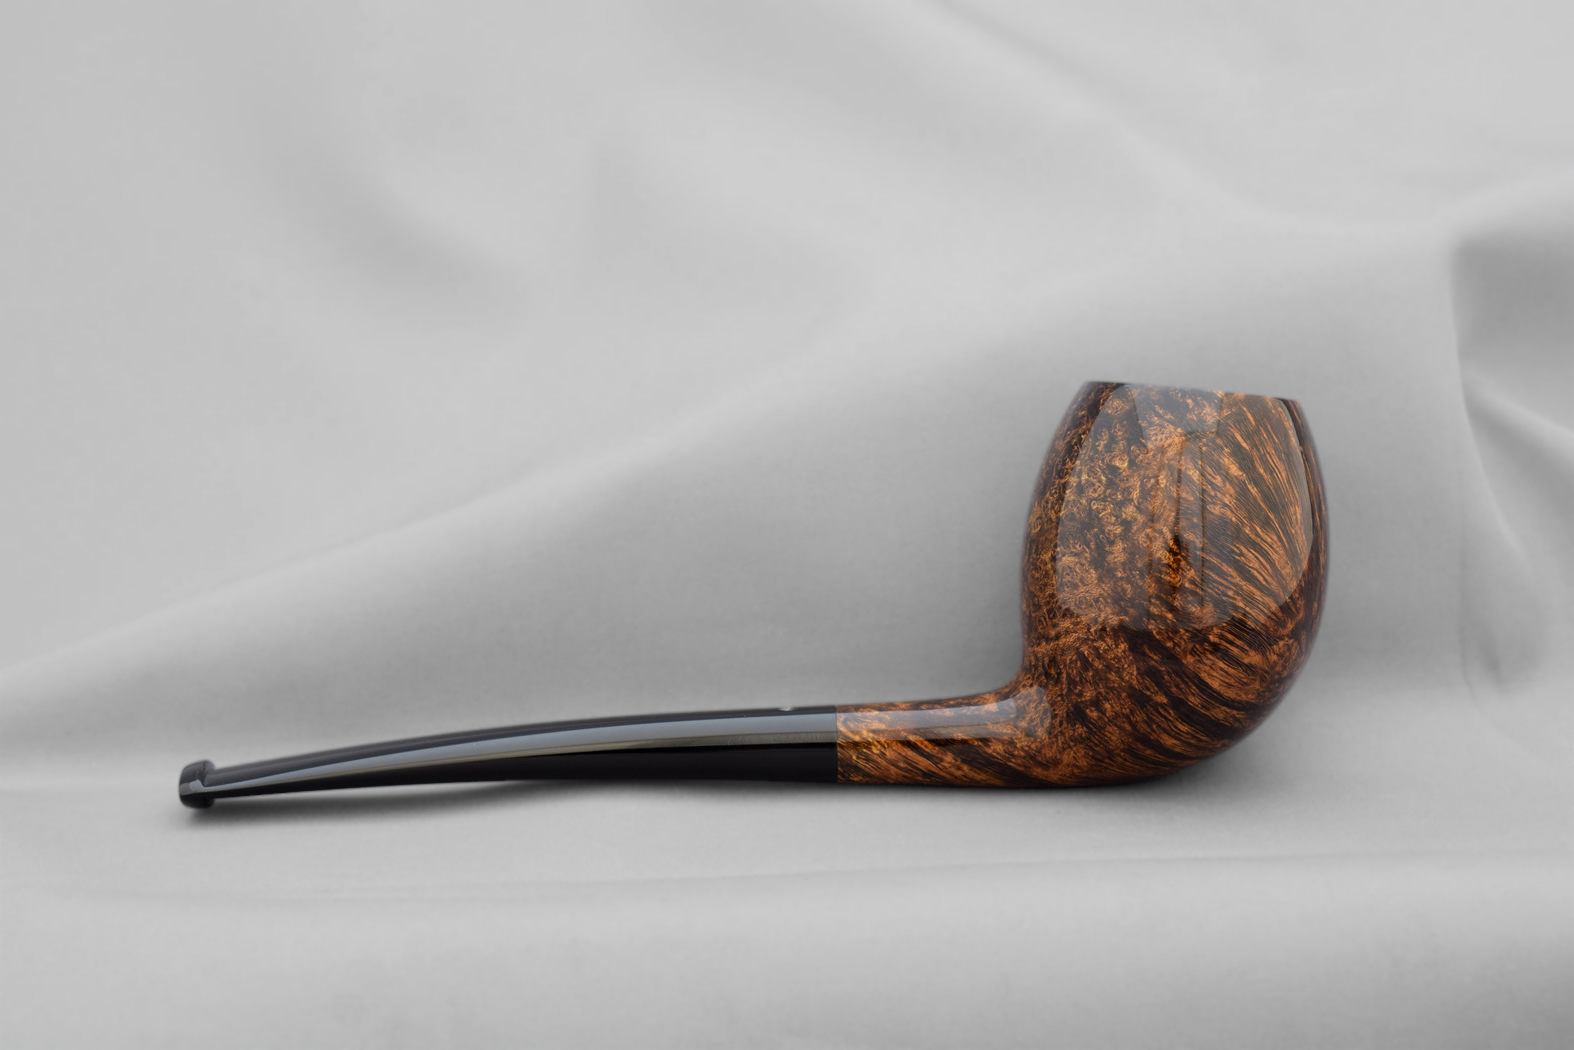 Canted_Cutty_1243_2.jpg